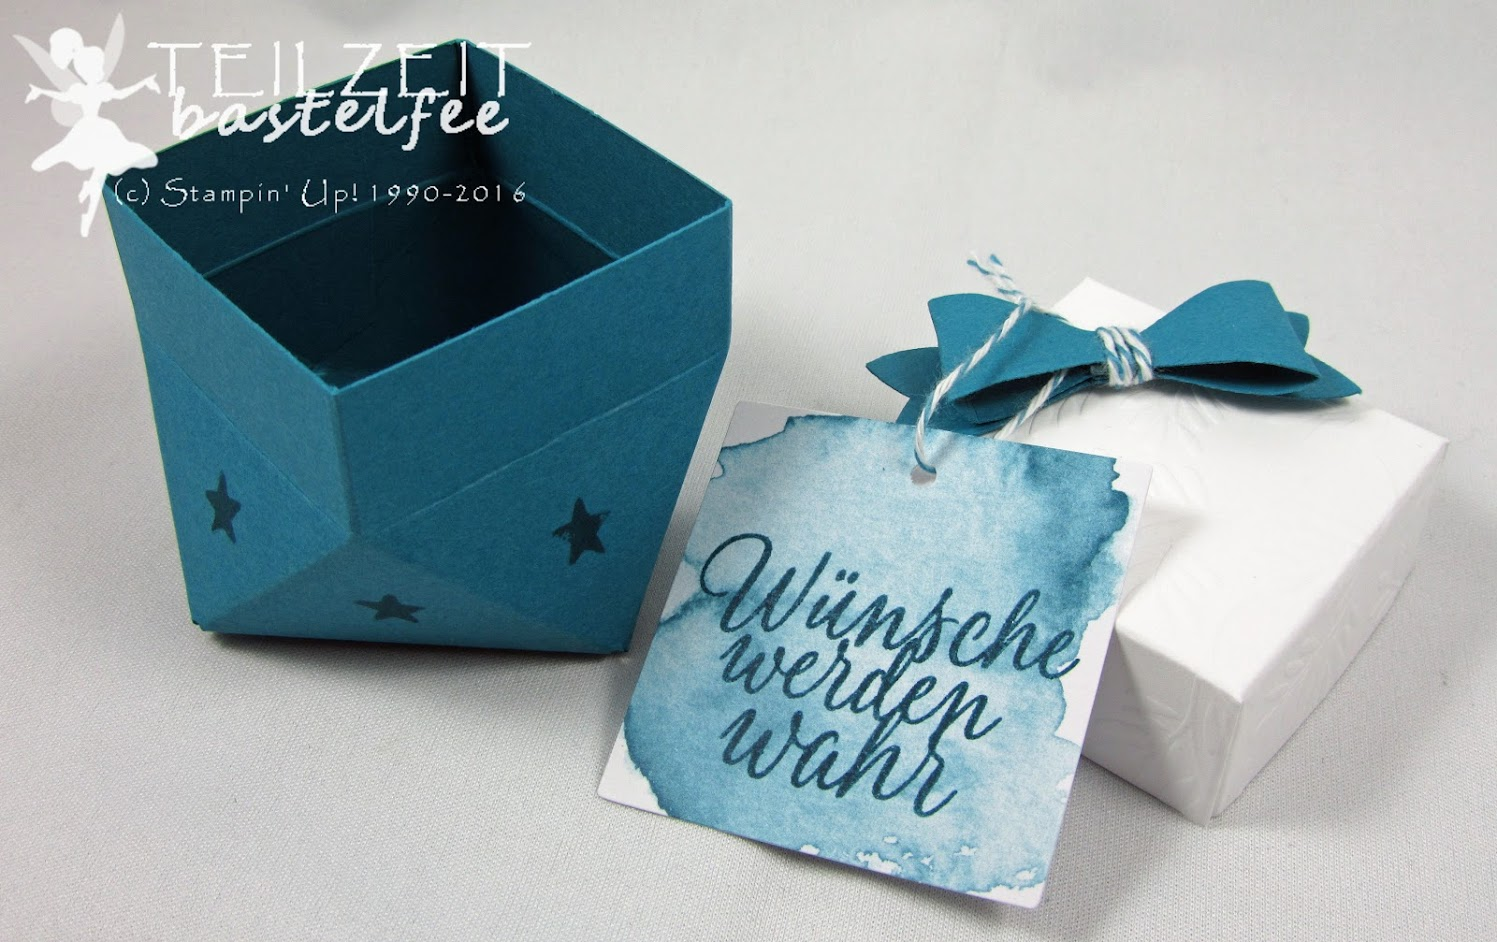 Stampin' Up! – Workshop, Weihnachten, Christmas, Thinlits Keepsake Box, Thinlits Zierschachtel für Andenken, Prägeform Zopfmuster, Christmas Magic, Embossing Form Cable Knit, Produktset Drauf und Dran, Tin of Tags Project Kit, DP Es weihnachtet sehr, DSP Presents and Pinecones, DP Eisfantasie, DSP Fancy Frost, Ausgestochen Weihnachtlich, Cookie Cutter Christmas, Stanze Lebkuchenmännchen, Cookie Cutter Builder Punch, Stanze Fähnchen, Elementstanze Schleife, Bow Builder Punch, Banner Triple Punch, Framelits Circle Collection